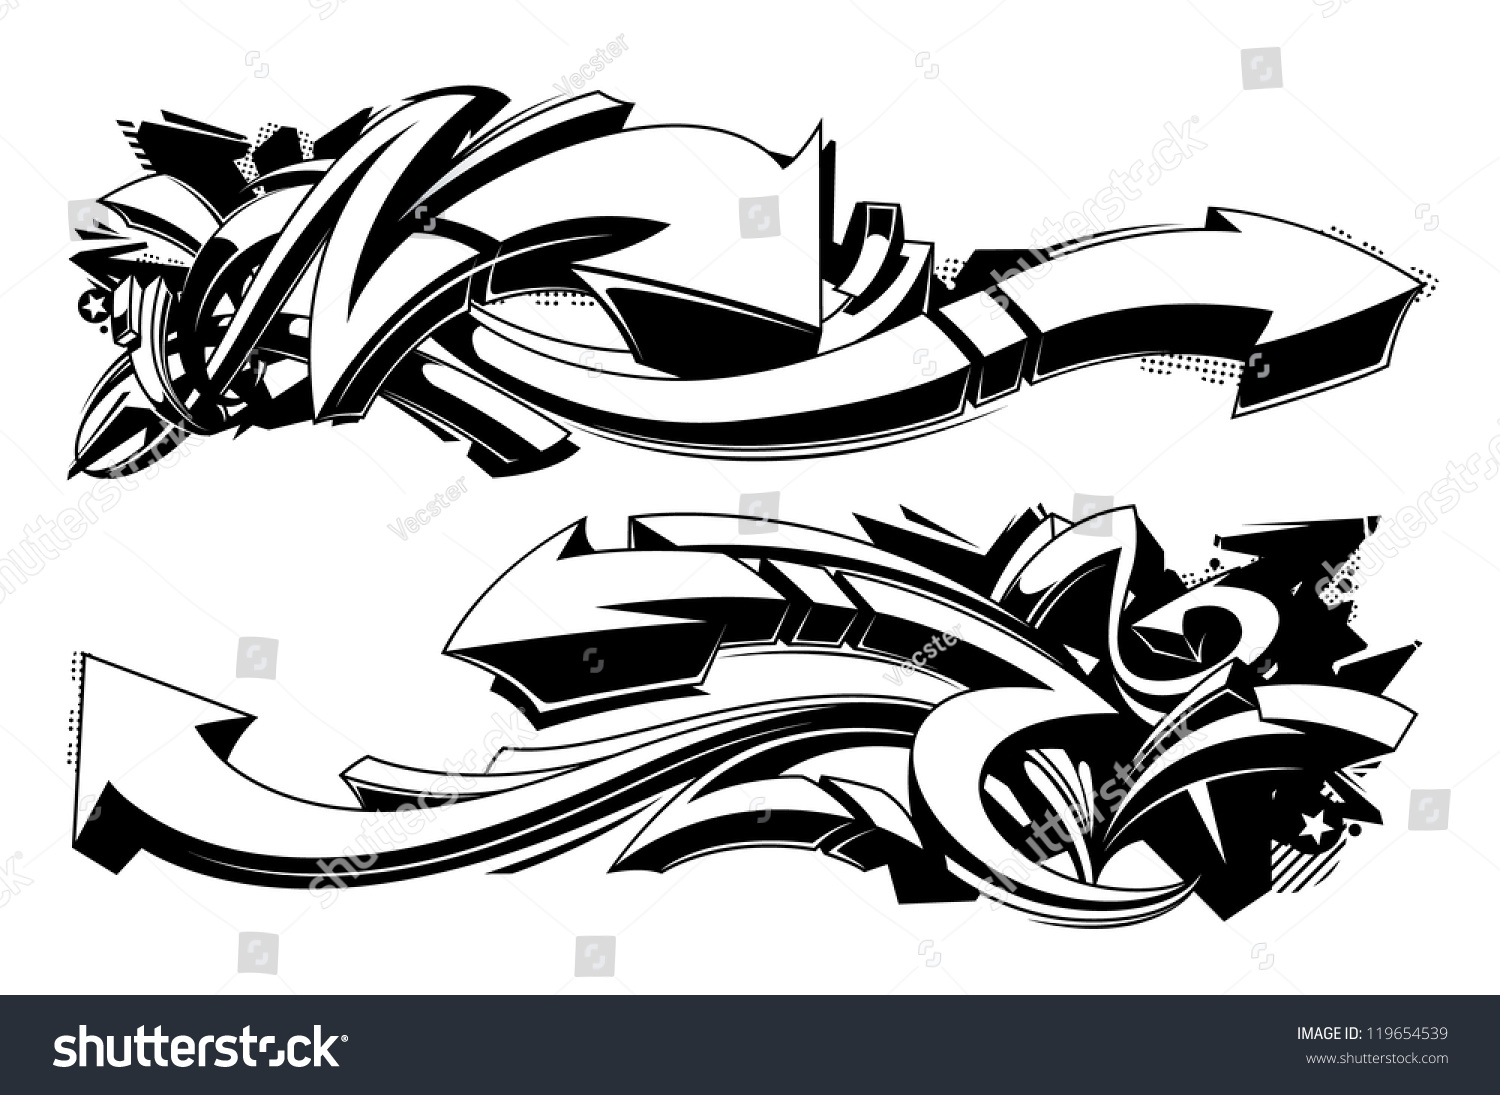 black white graffiti backgrounds horizontal graffiti stock